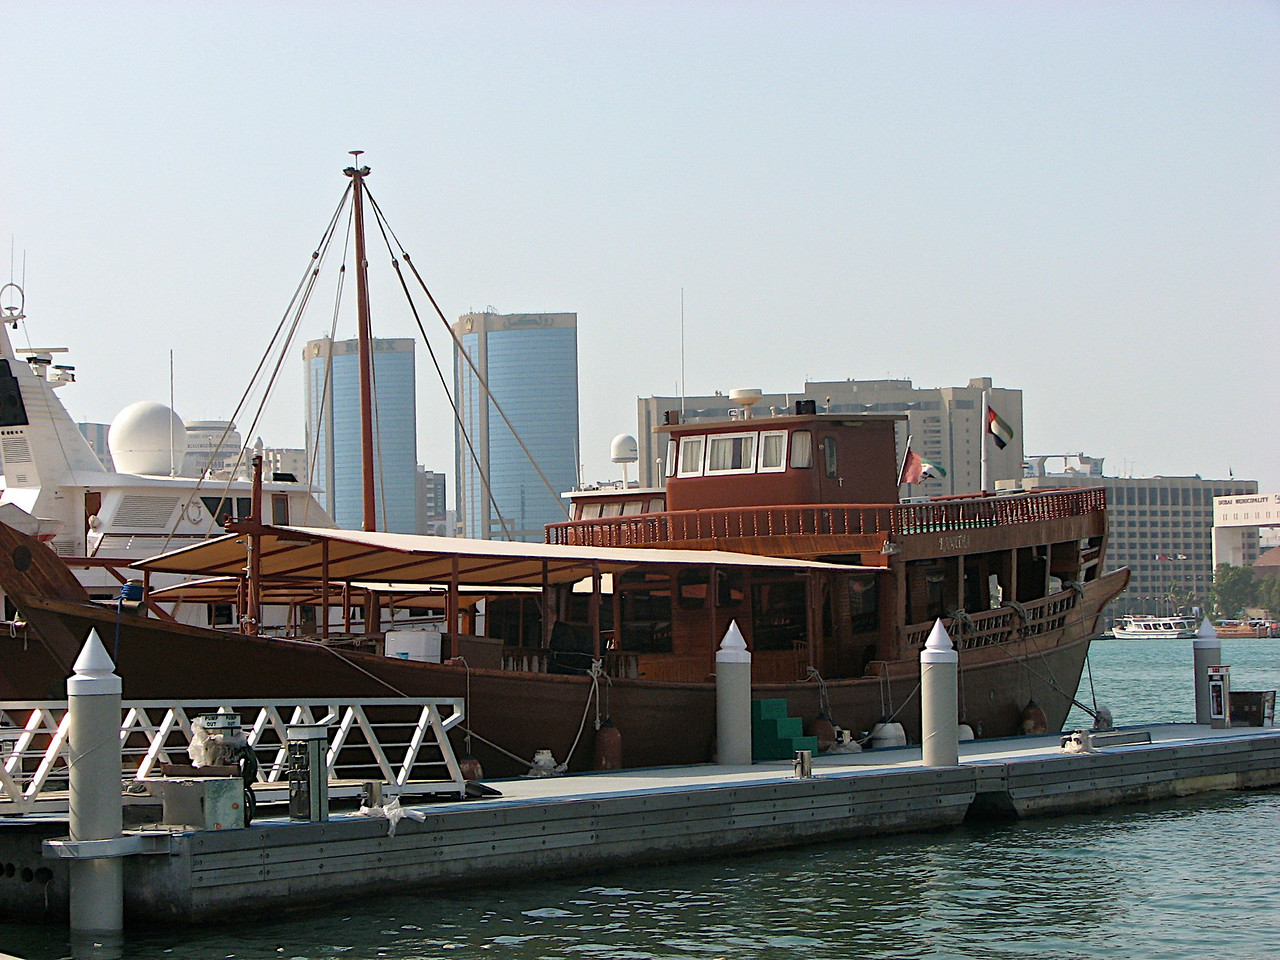 Here is a traditional dhow sitting in Dubai Creek.  The Creek divides the city in two.